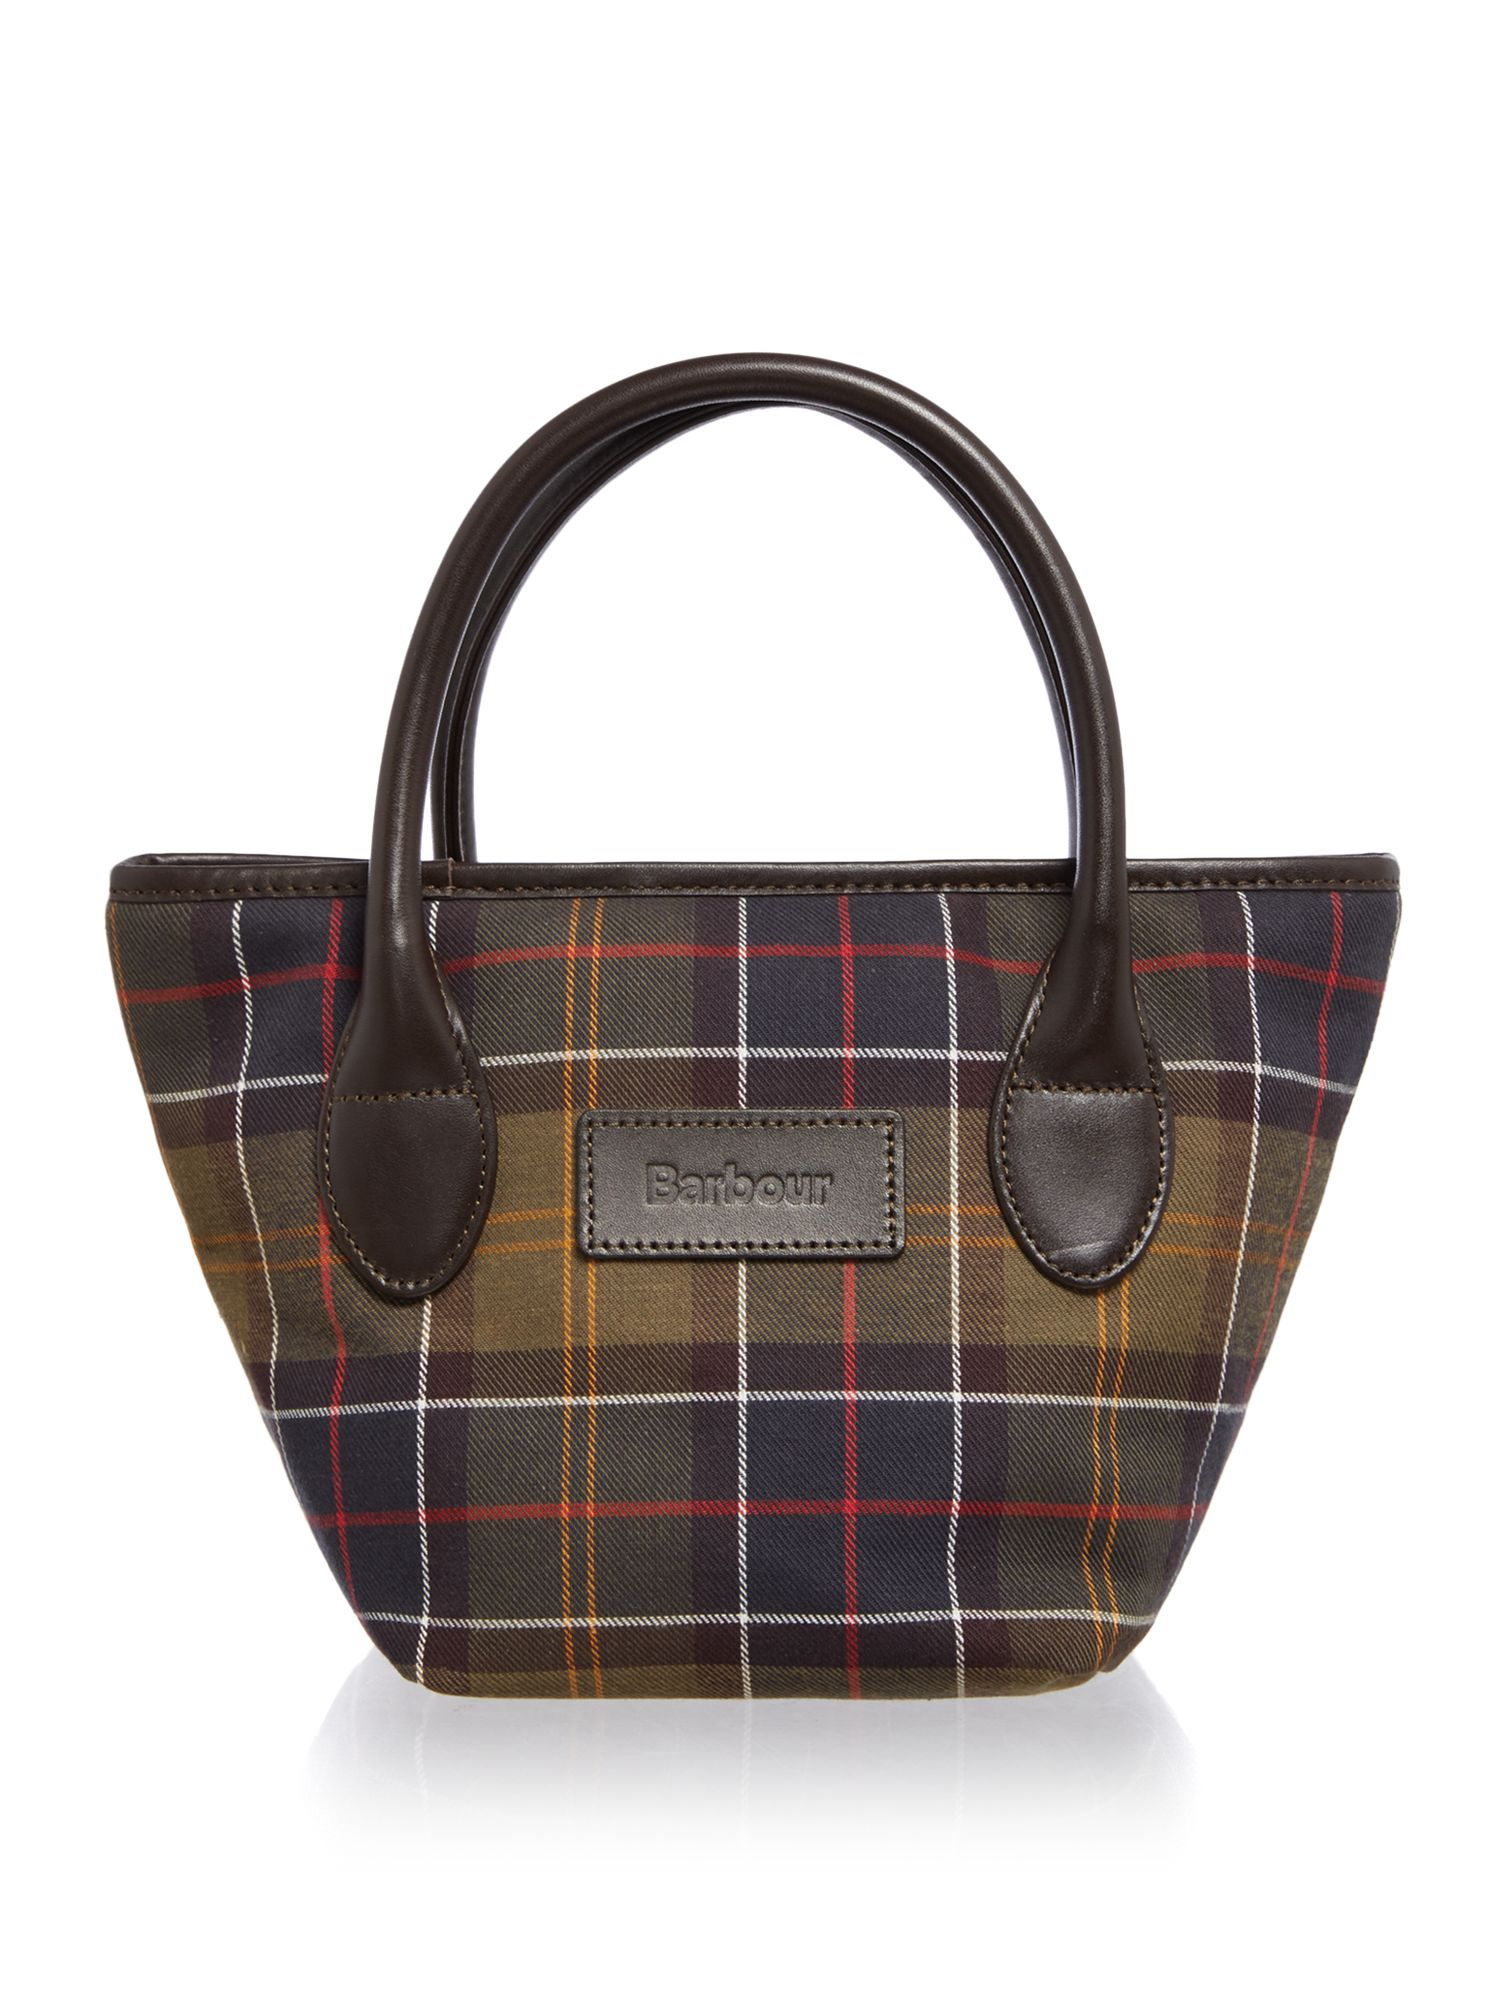 Barbour classic tartan tote bag review for Quality classic house of fraser